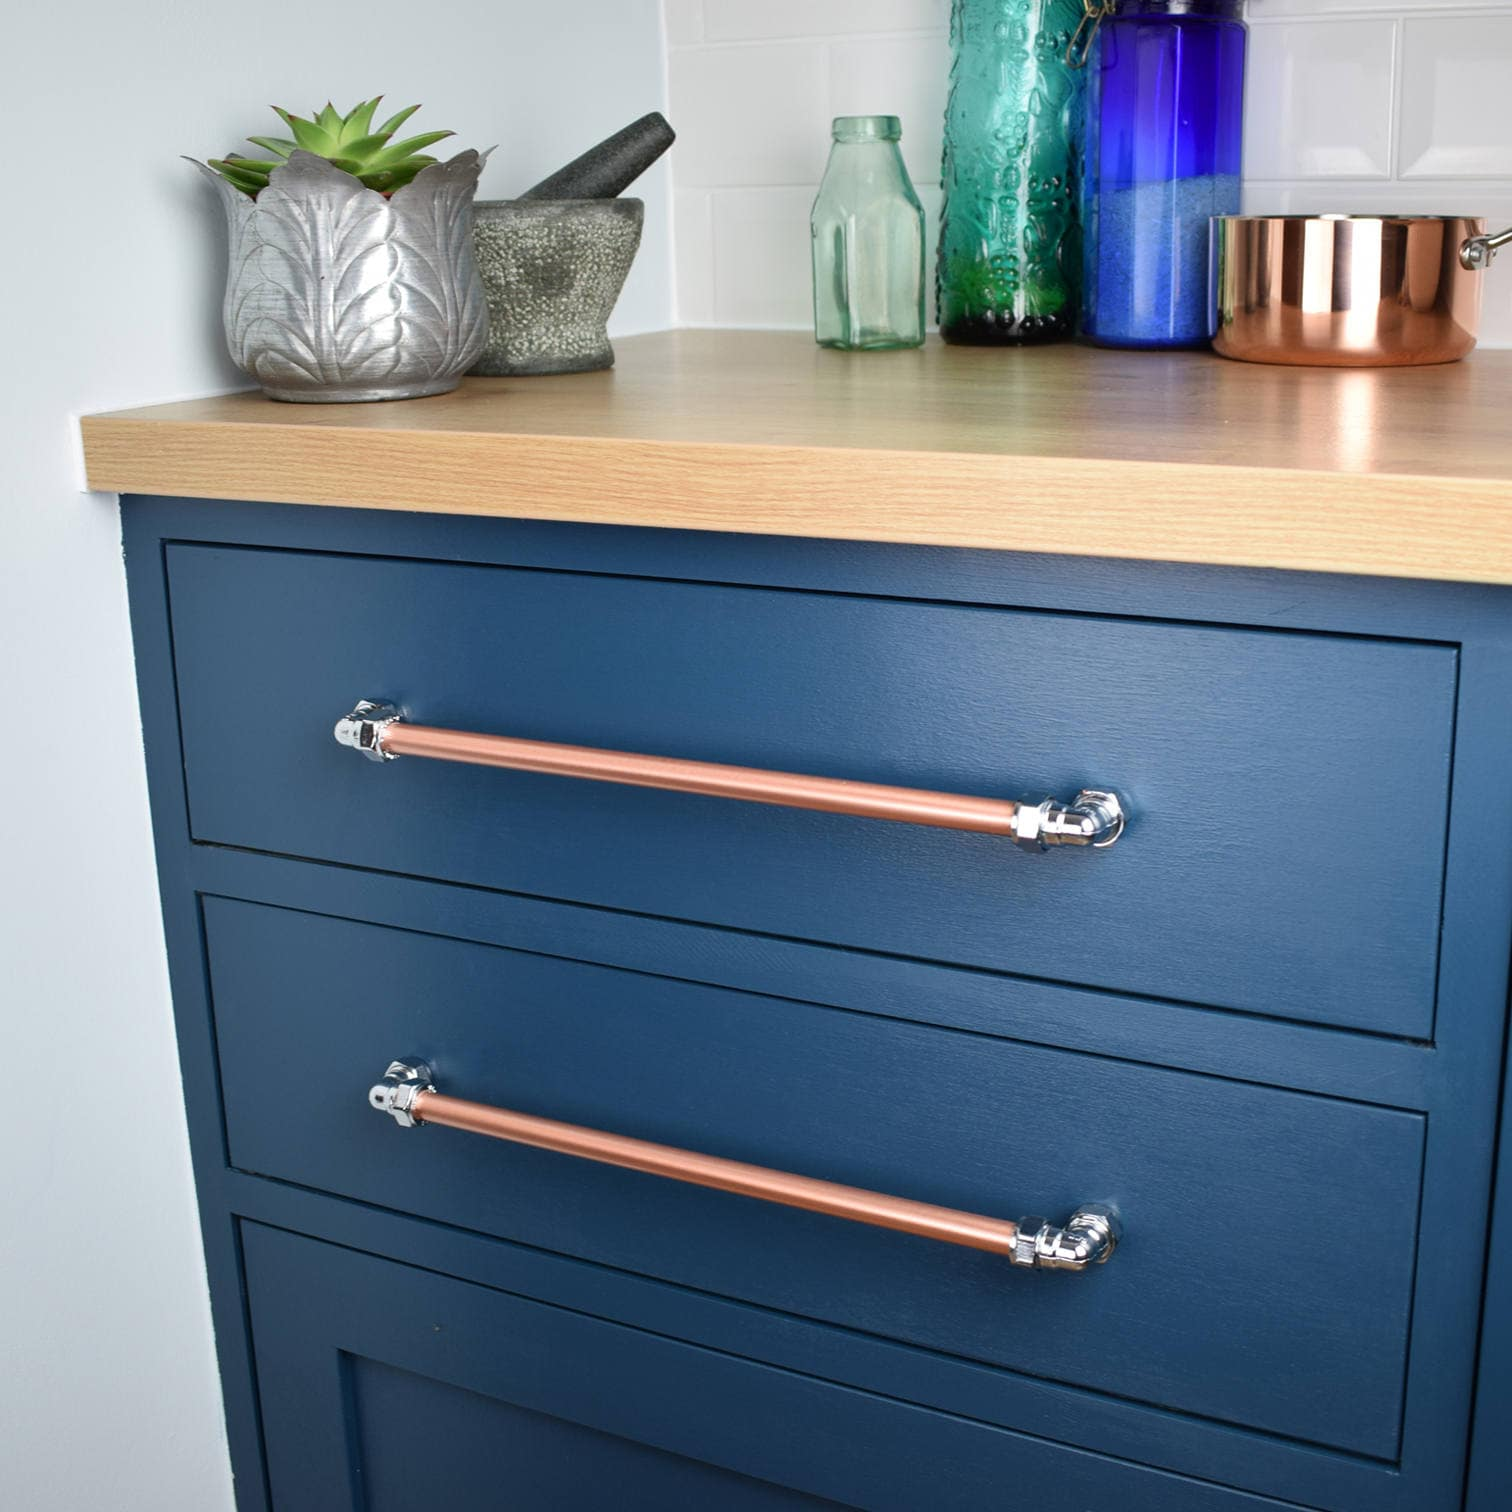 Kitchen Cabinet Drawers Industrial Copper And Chrome Pull Drawer Pulls Cabinet Hardware Kitchen Cabinet Pulls Kitchen Door Handles Copper Hardware Copper